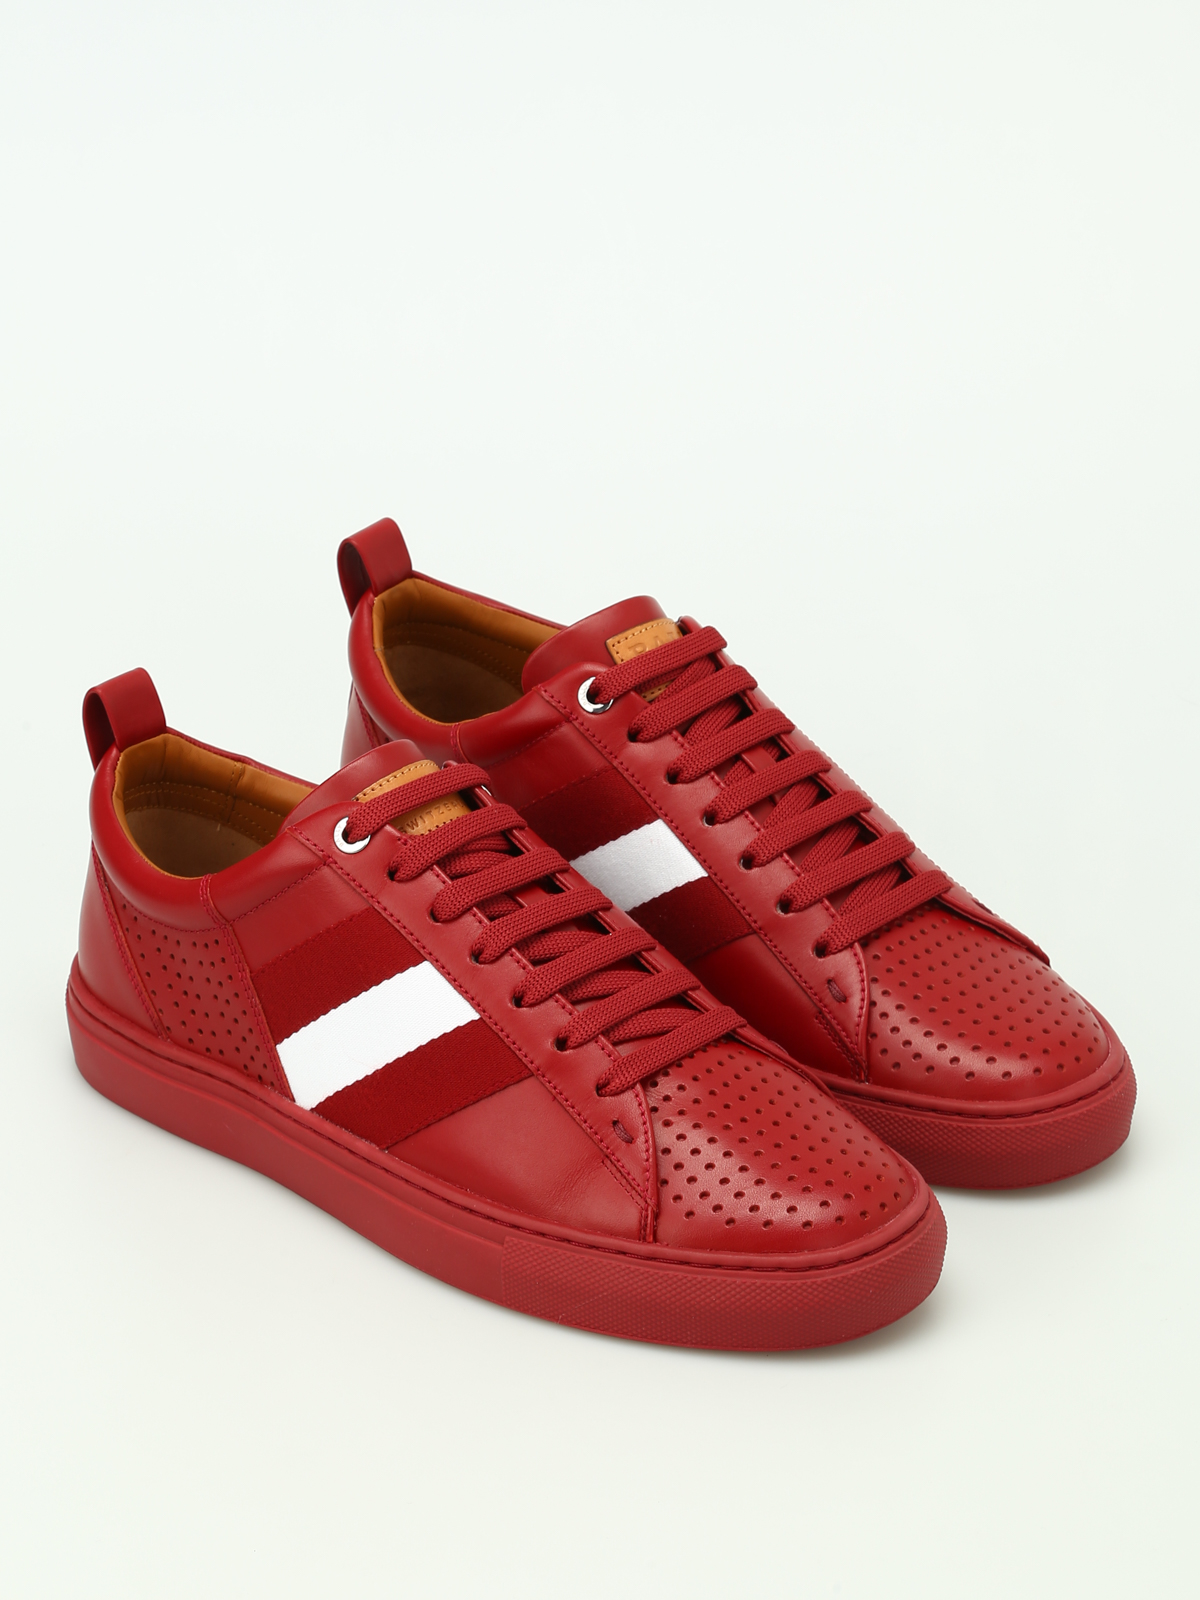 Bally - Henton red leather sneakers